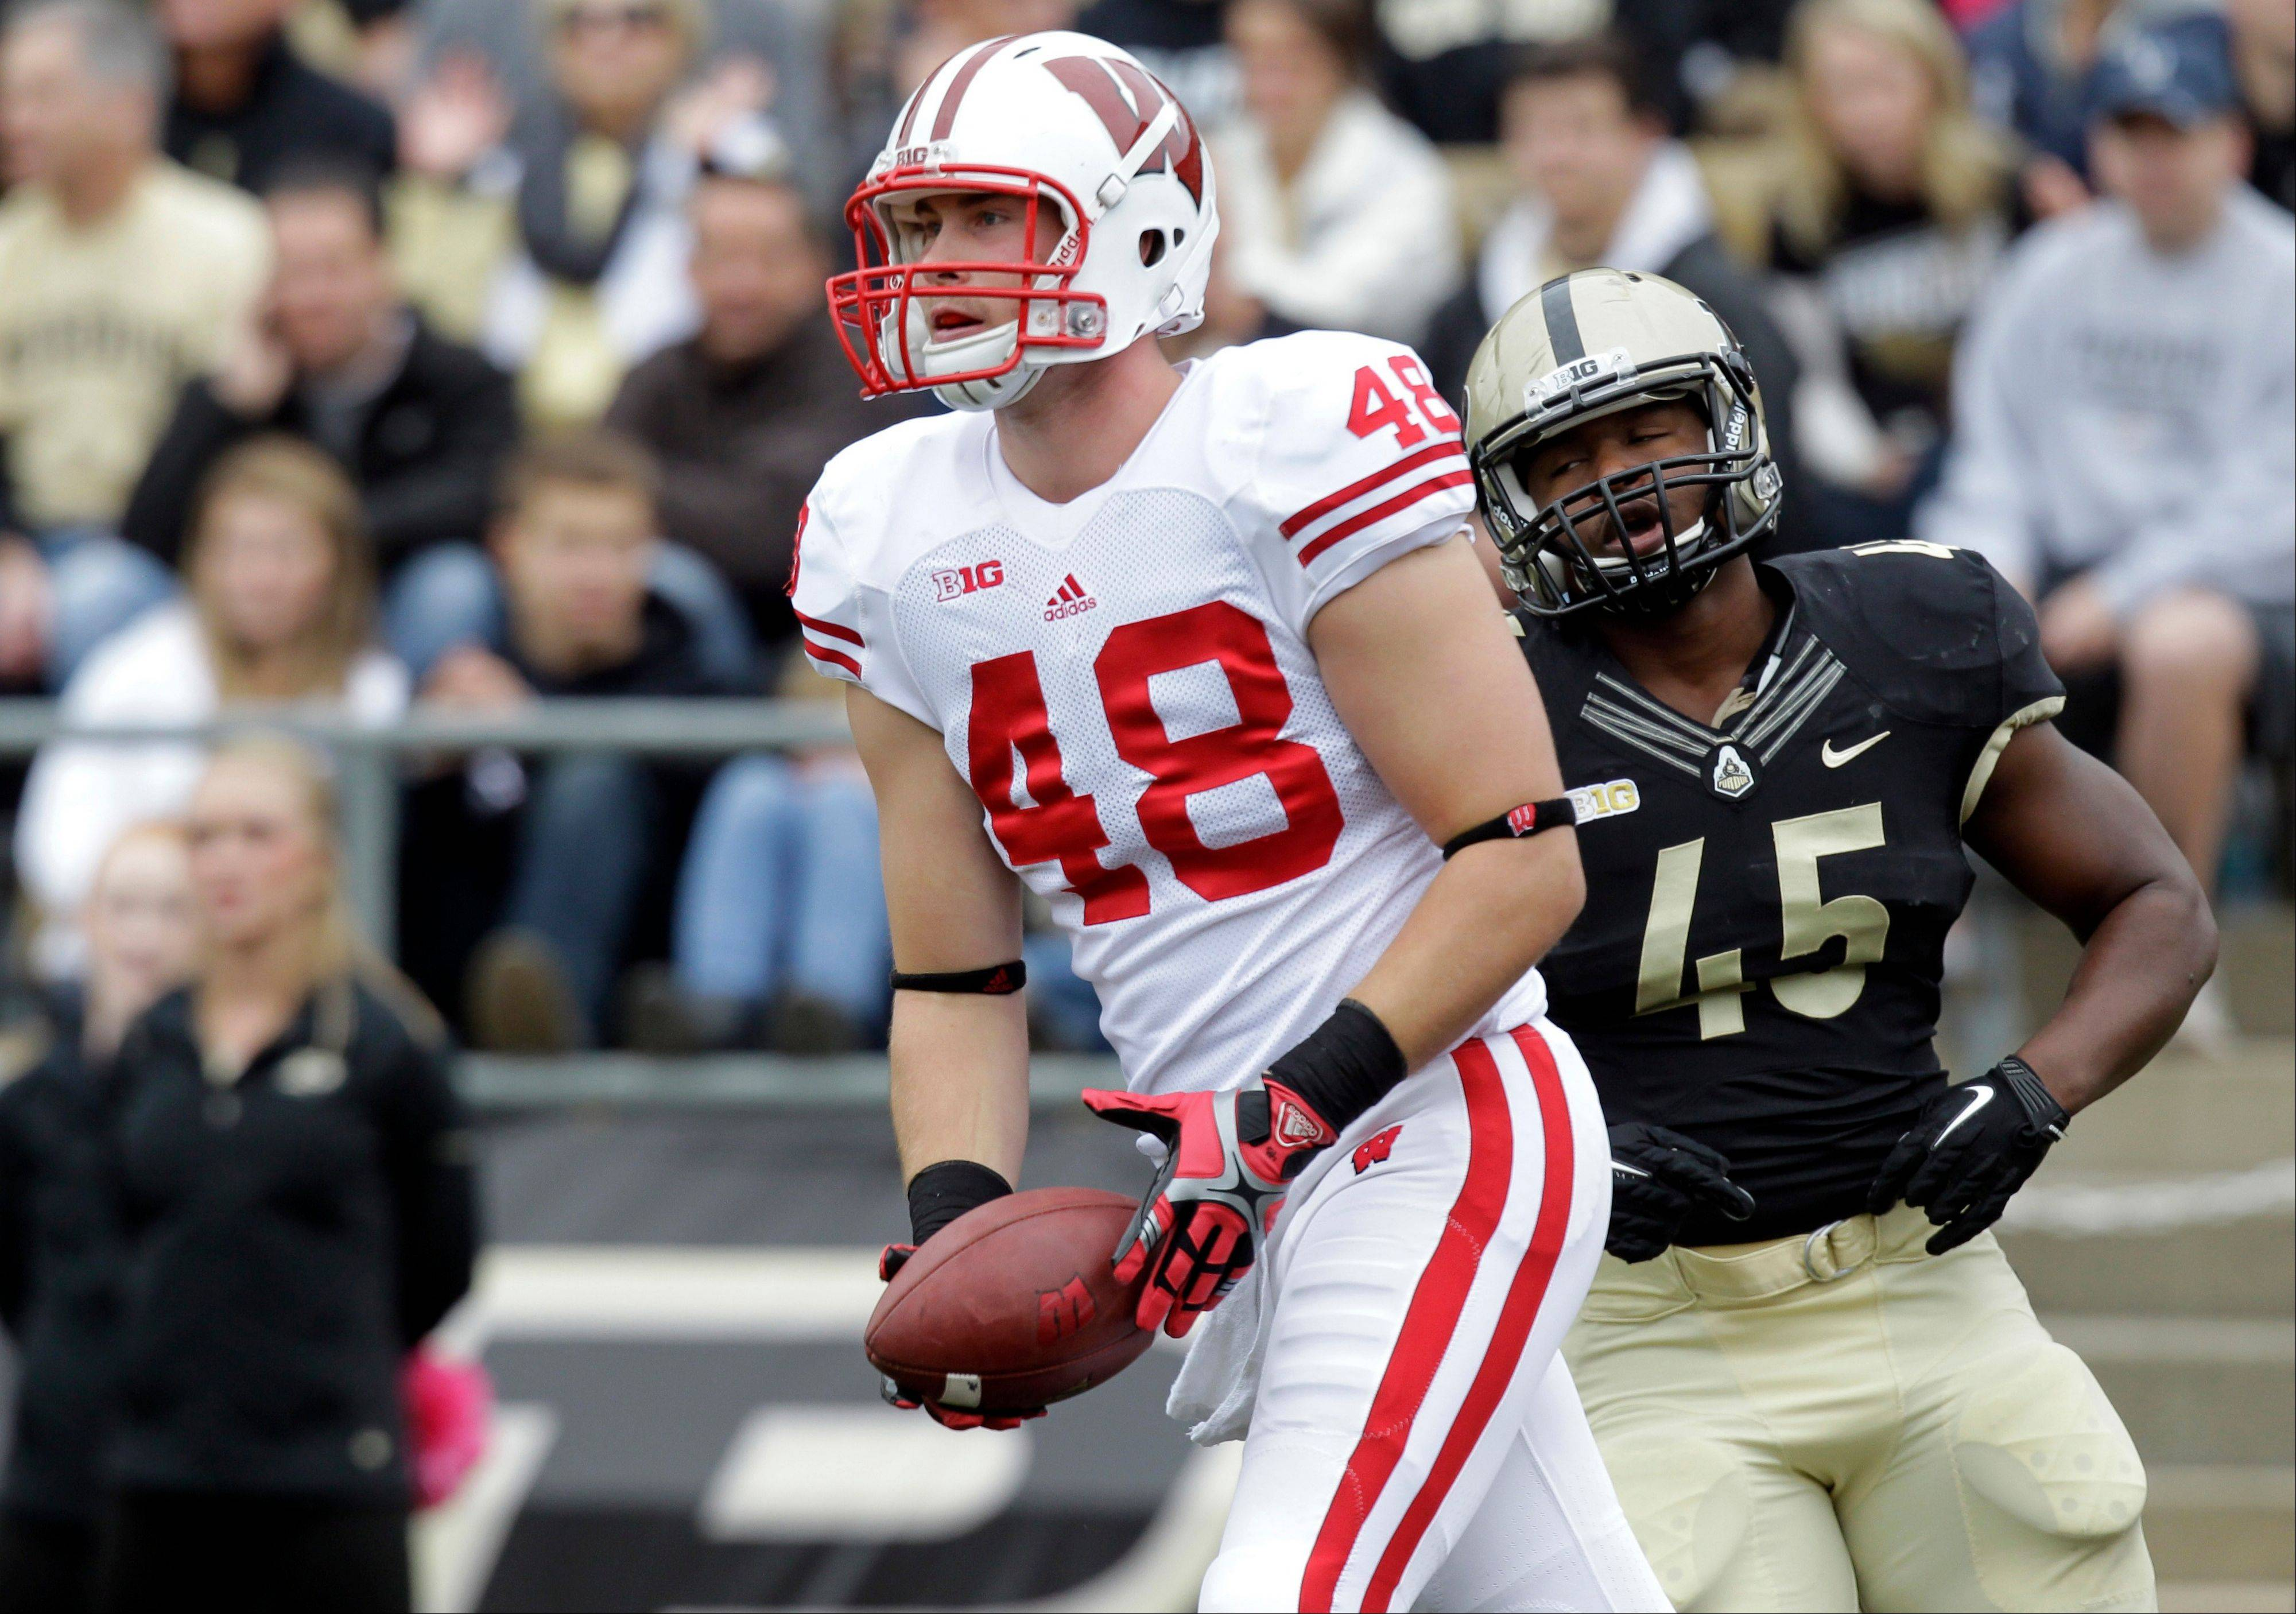 Ball has career day as Wisconsin beat Purdue 38-14